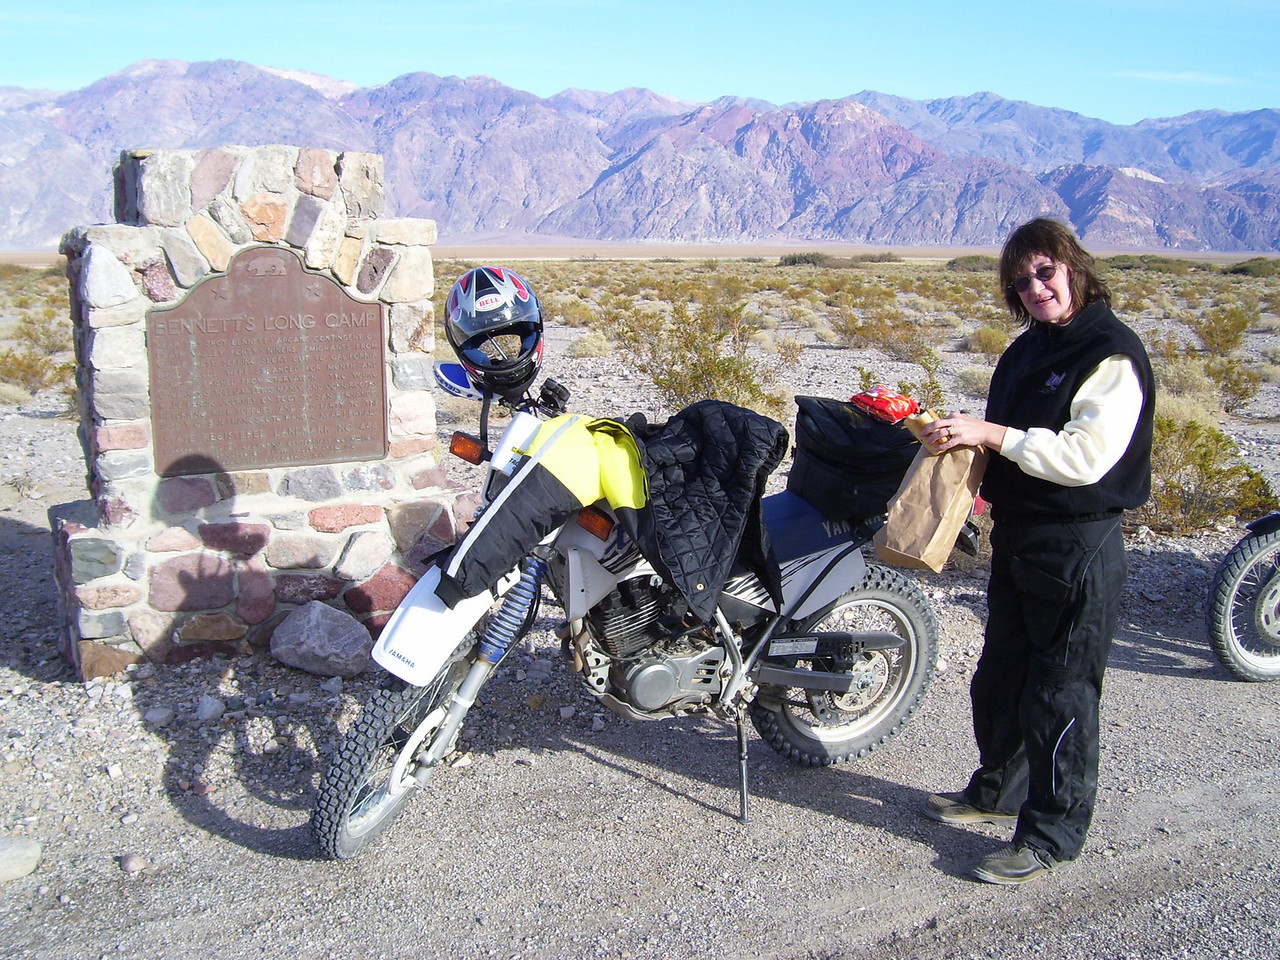 Lunch stop. A party of early settlers nearly starved to death here giving this park it's name Death Valley.